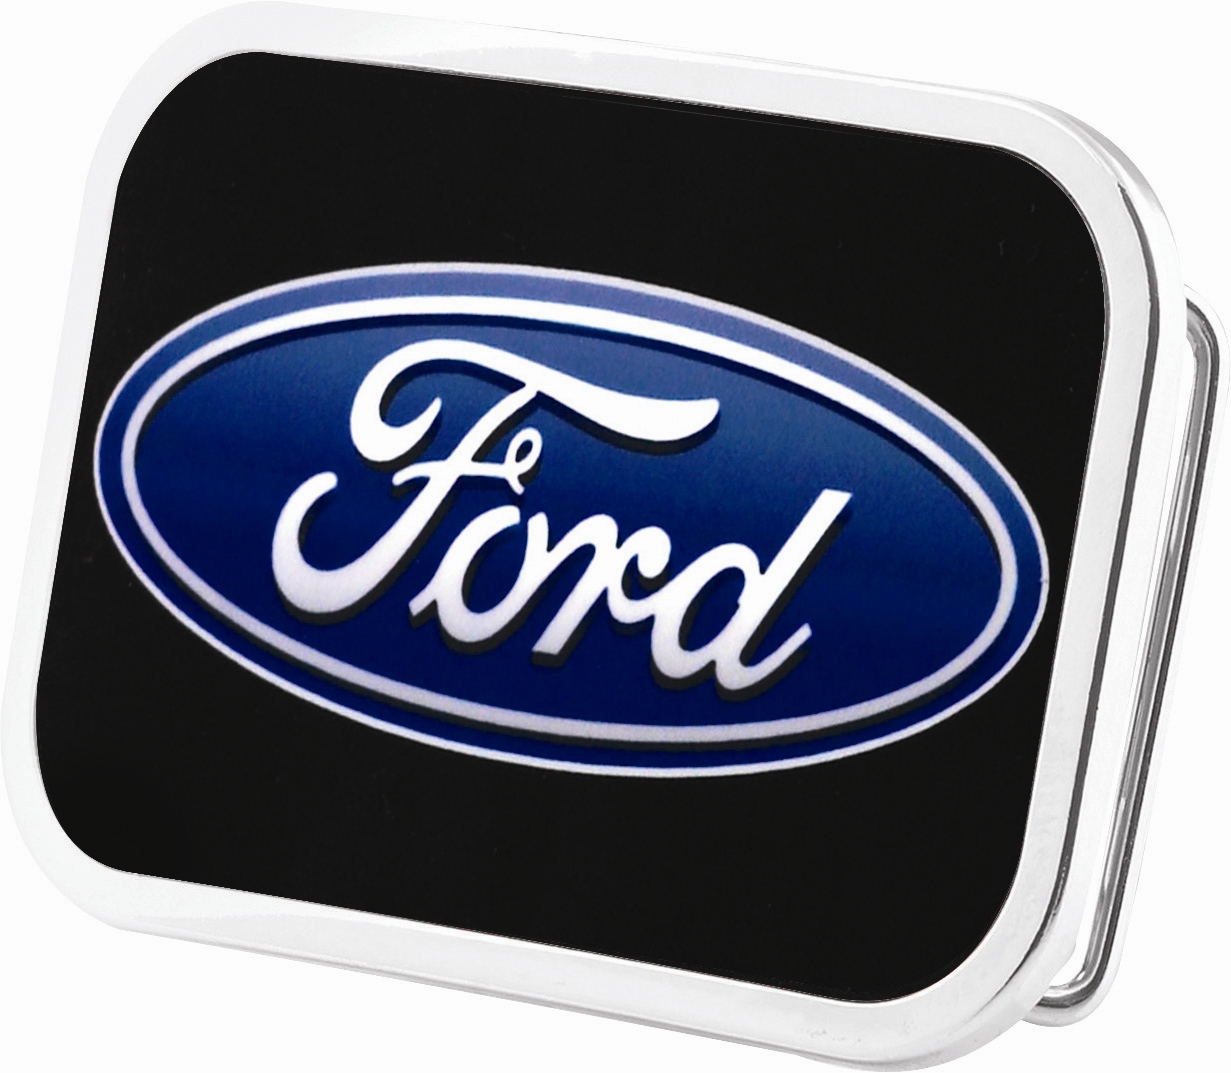 Ford Logo Blue Black wallpapers55com   Best Wallpapers for PCs 1231x1073